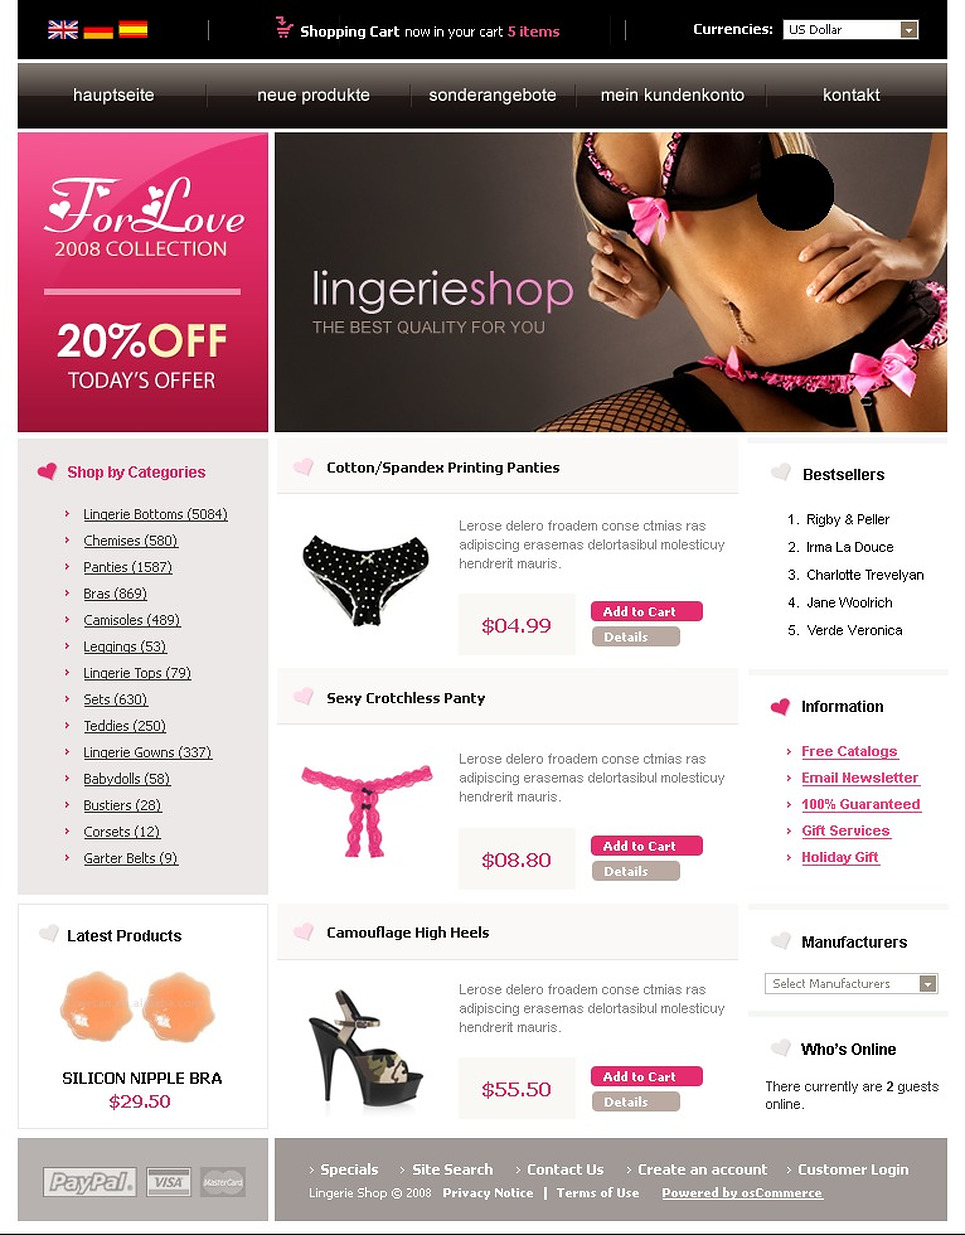 A Modern Lingerie OSCommerce Template in Black Background